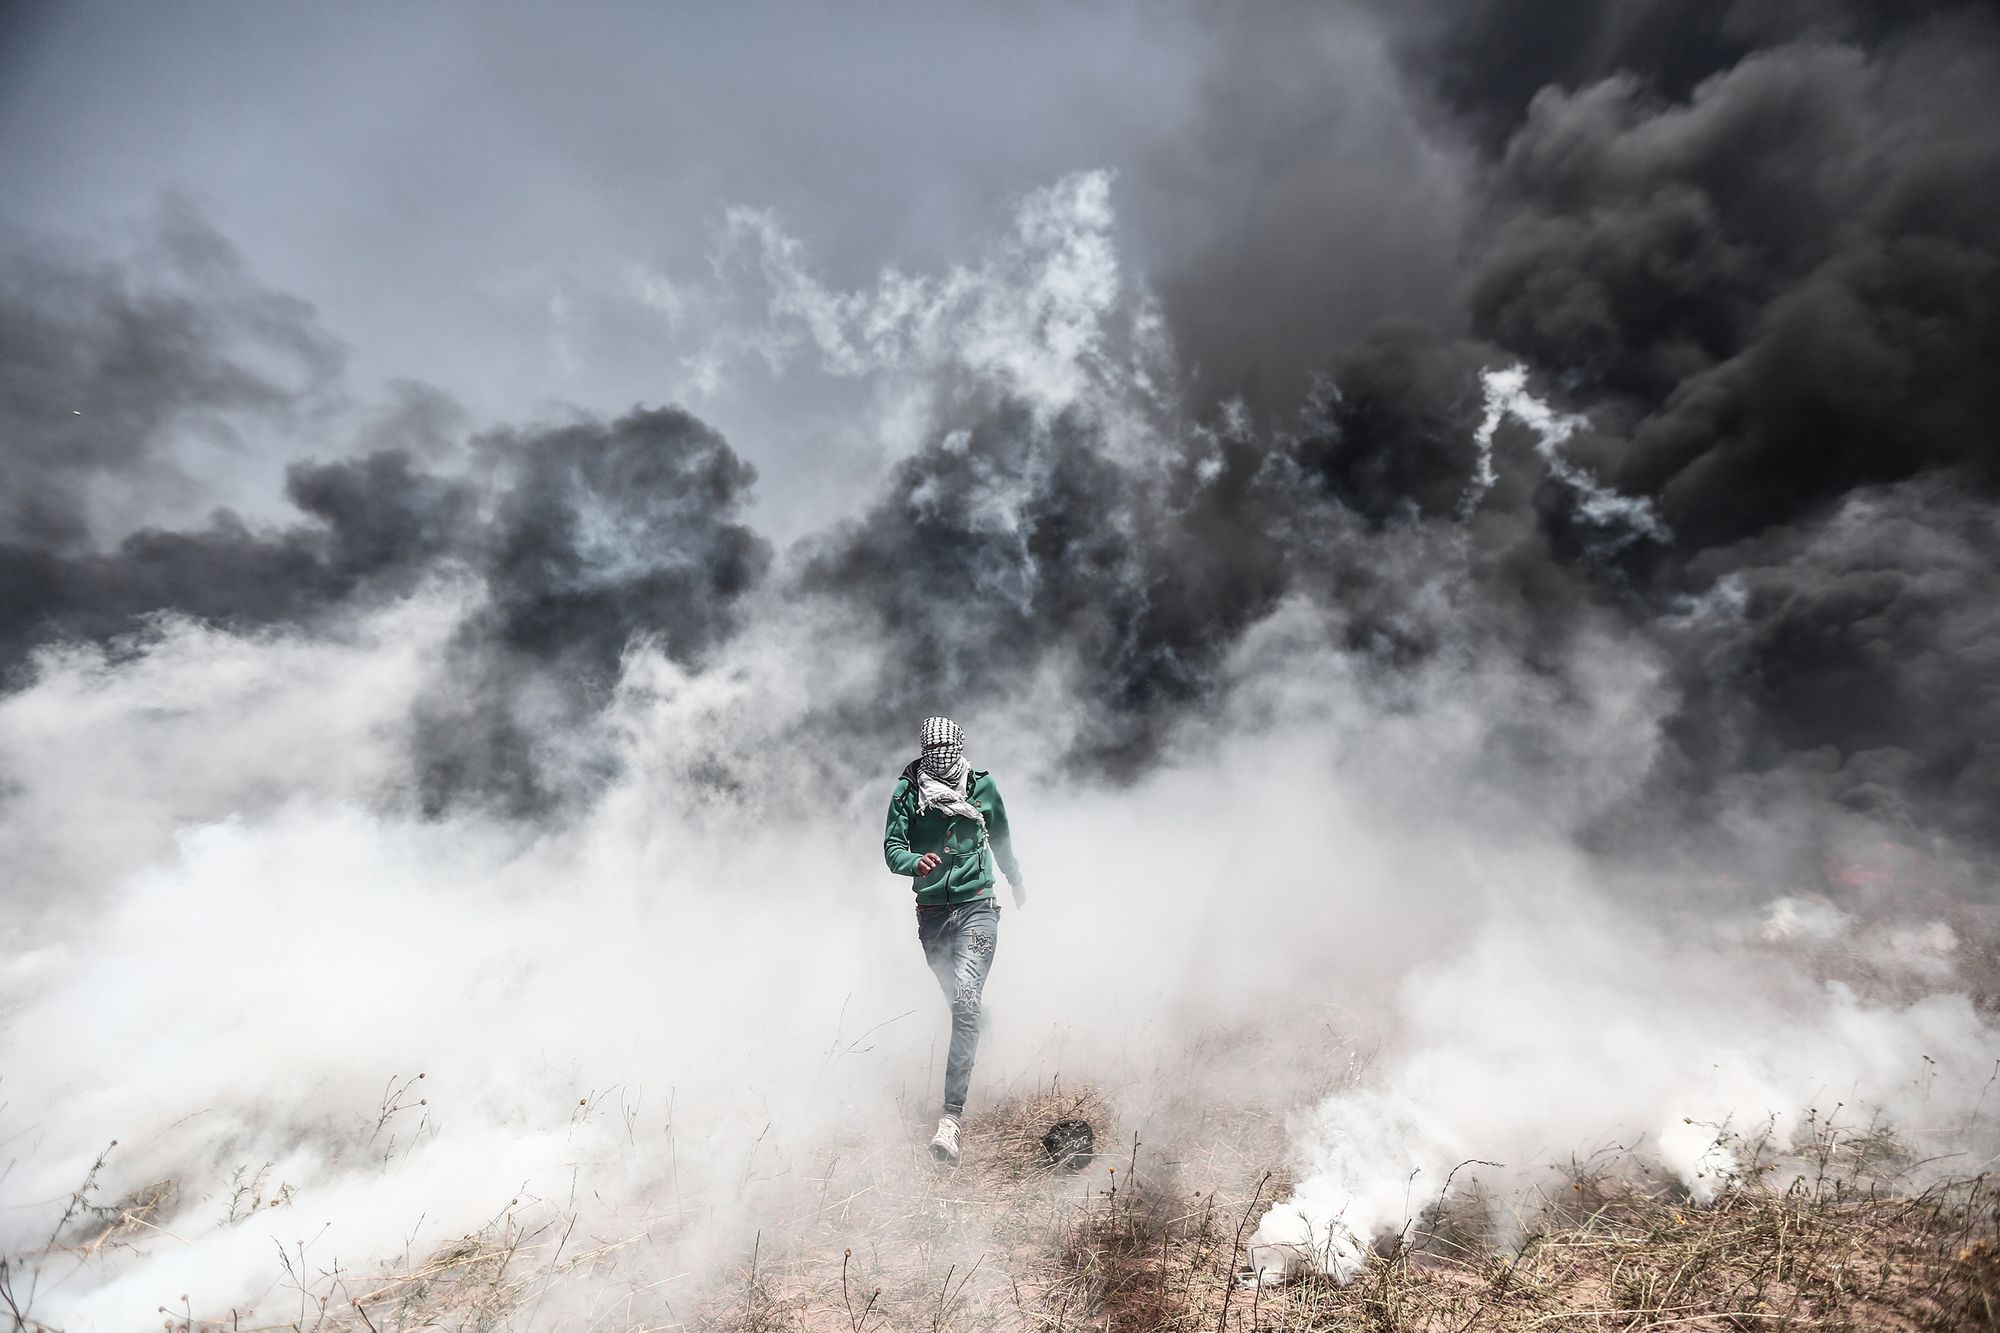 KHAN YUNIS, GAZA - APRIL 6: A Palestinian demonstrator escapes heavy smoke as Israeli soldiers fire several gas bombs during his participation in the 'Great March of Return,' despite Israel's threats near the Gaza-Israel border in Khan Yunis, Gaza on April 06, 2018. Demonstration against Israel's blockade of the Gaza Strip started taking place 11 years ago. Mustafa Hassona/Anadolu Agency